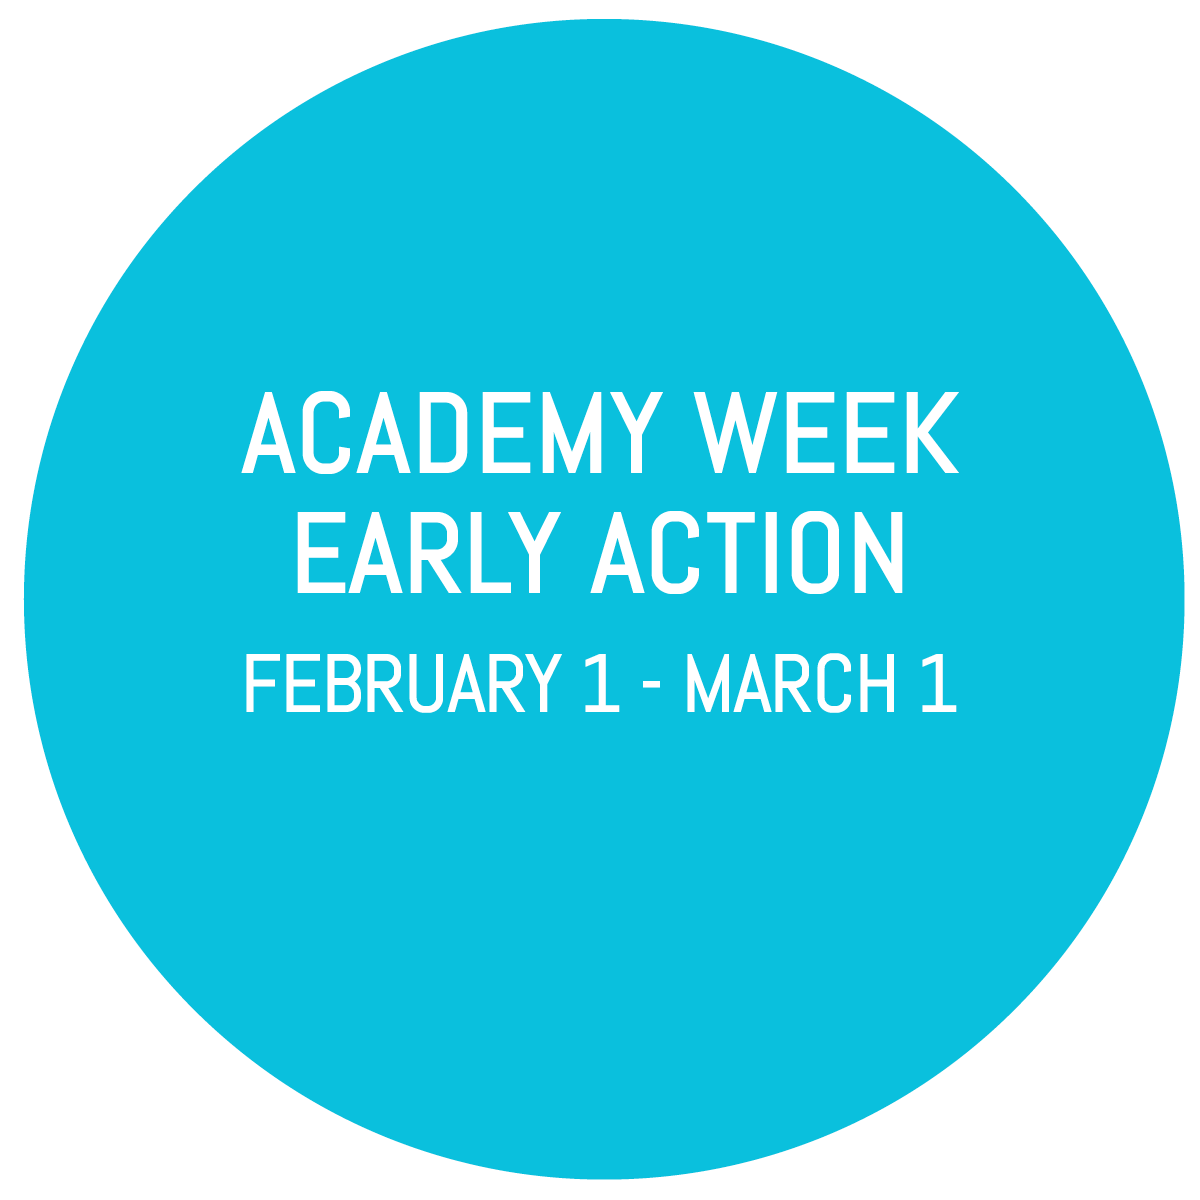 Non-Alumni are encouraged to apply to Academy Week's the Early Action round. We evaluate these applications and invite qualified candidates into the Emerging Founders selection process.